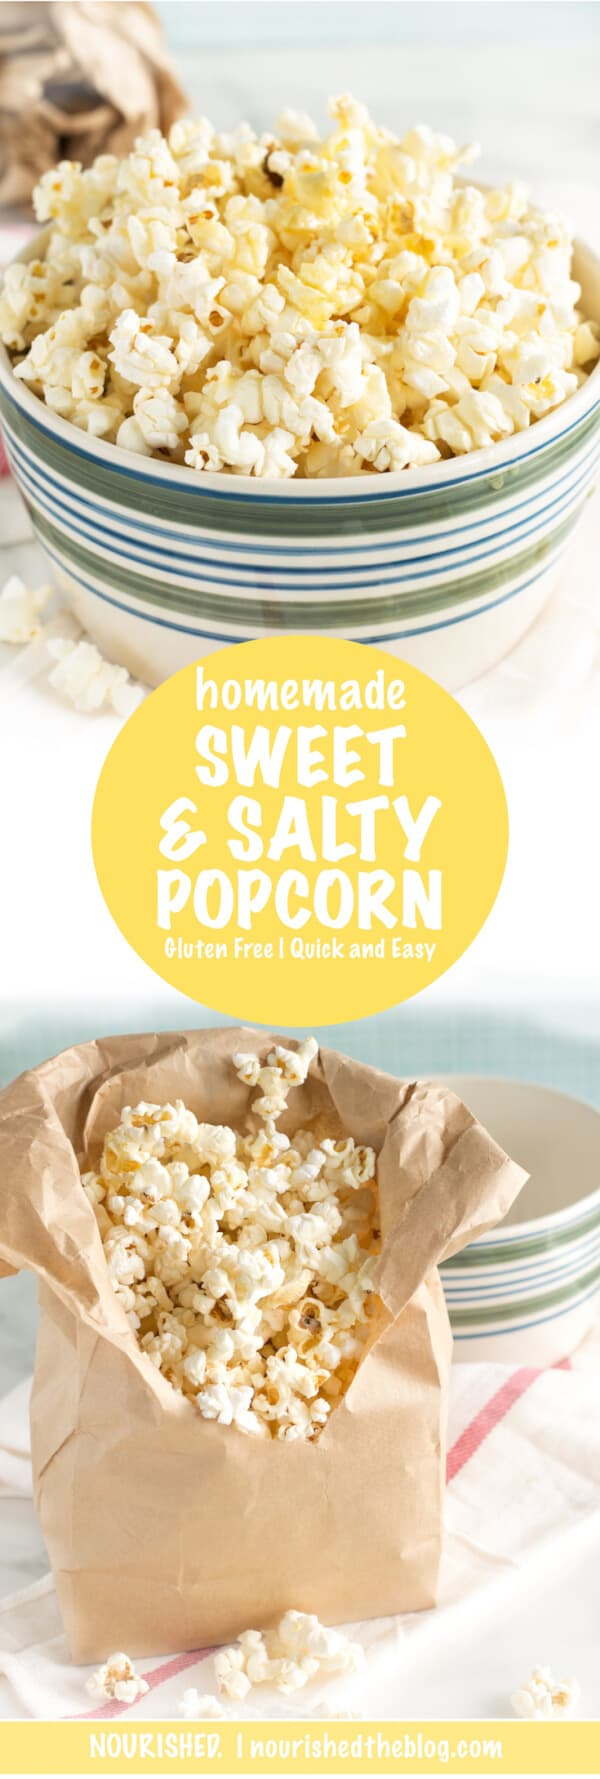 Homemade Sweet and Salty Popcorn Recipe